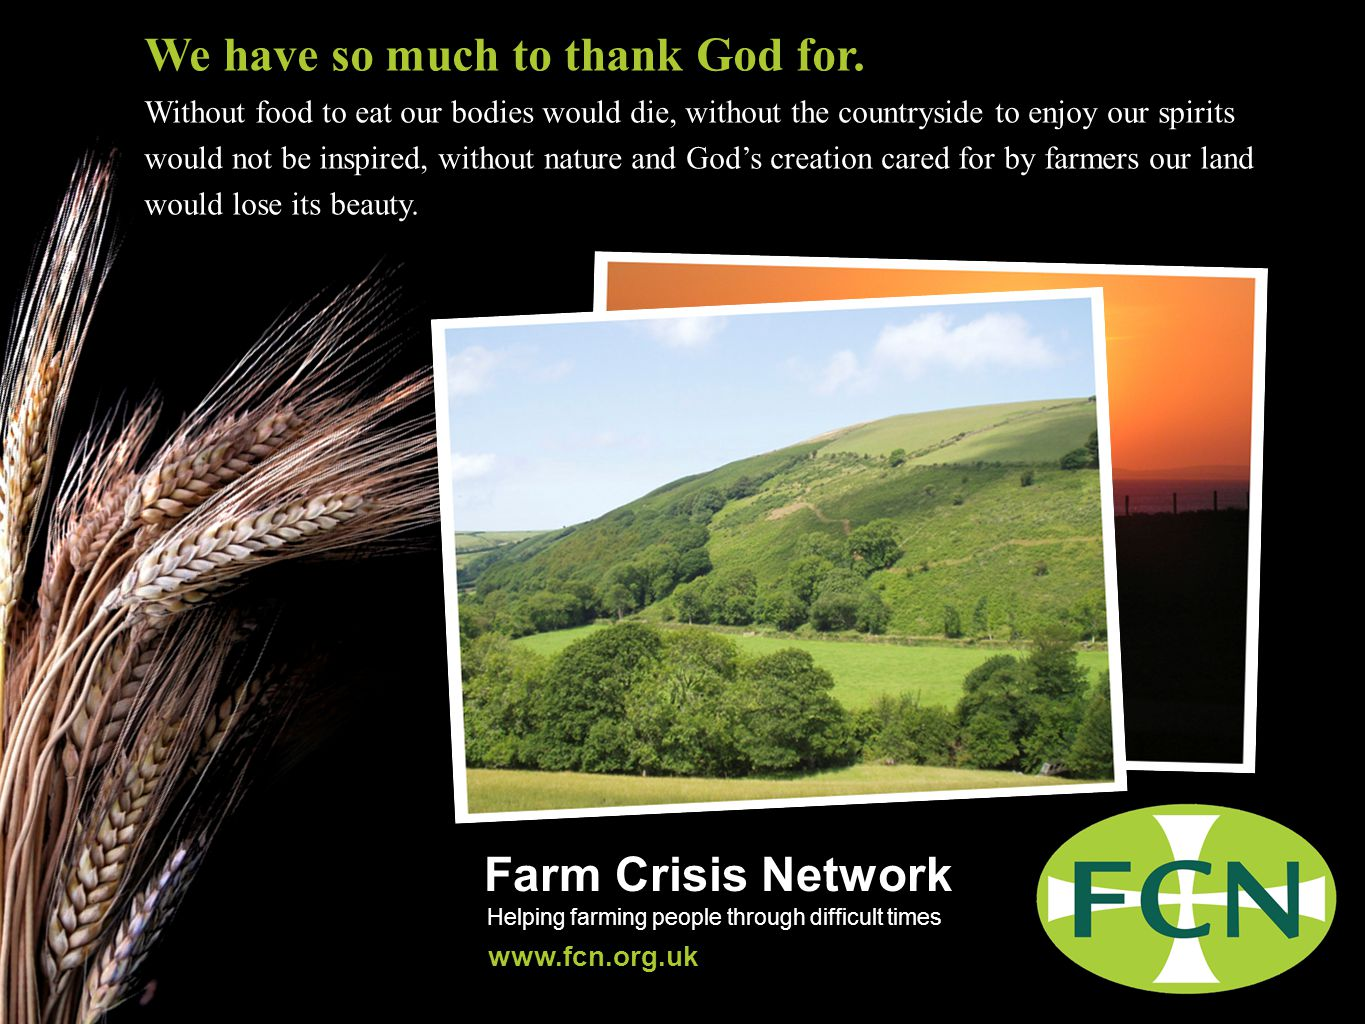 Farm Crisis Network Helping farming people through difficult times www.fcn.org.uk Farming is valuable to us all Farming gives us food to eat, countryside to enjoy and nature to marvel at.